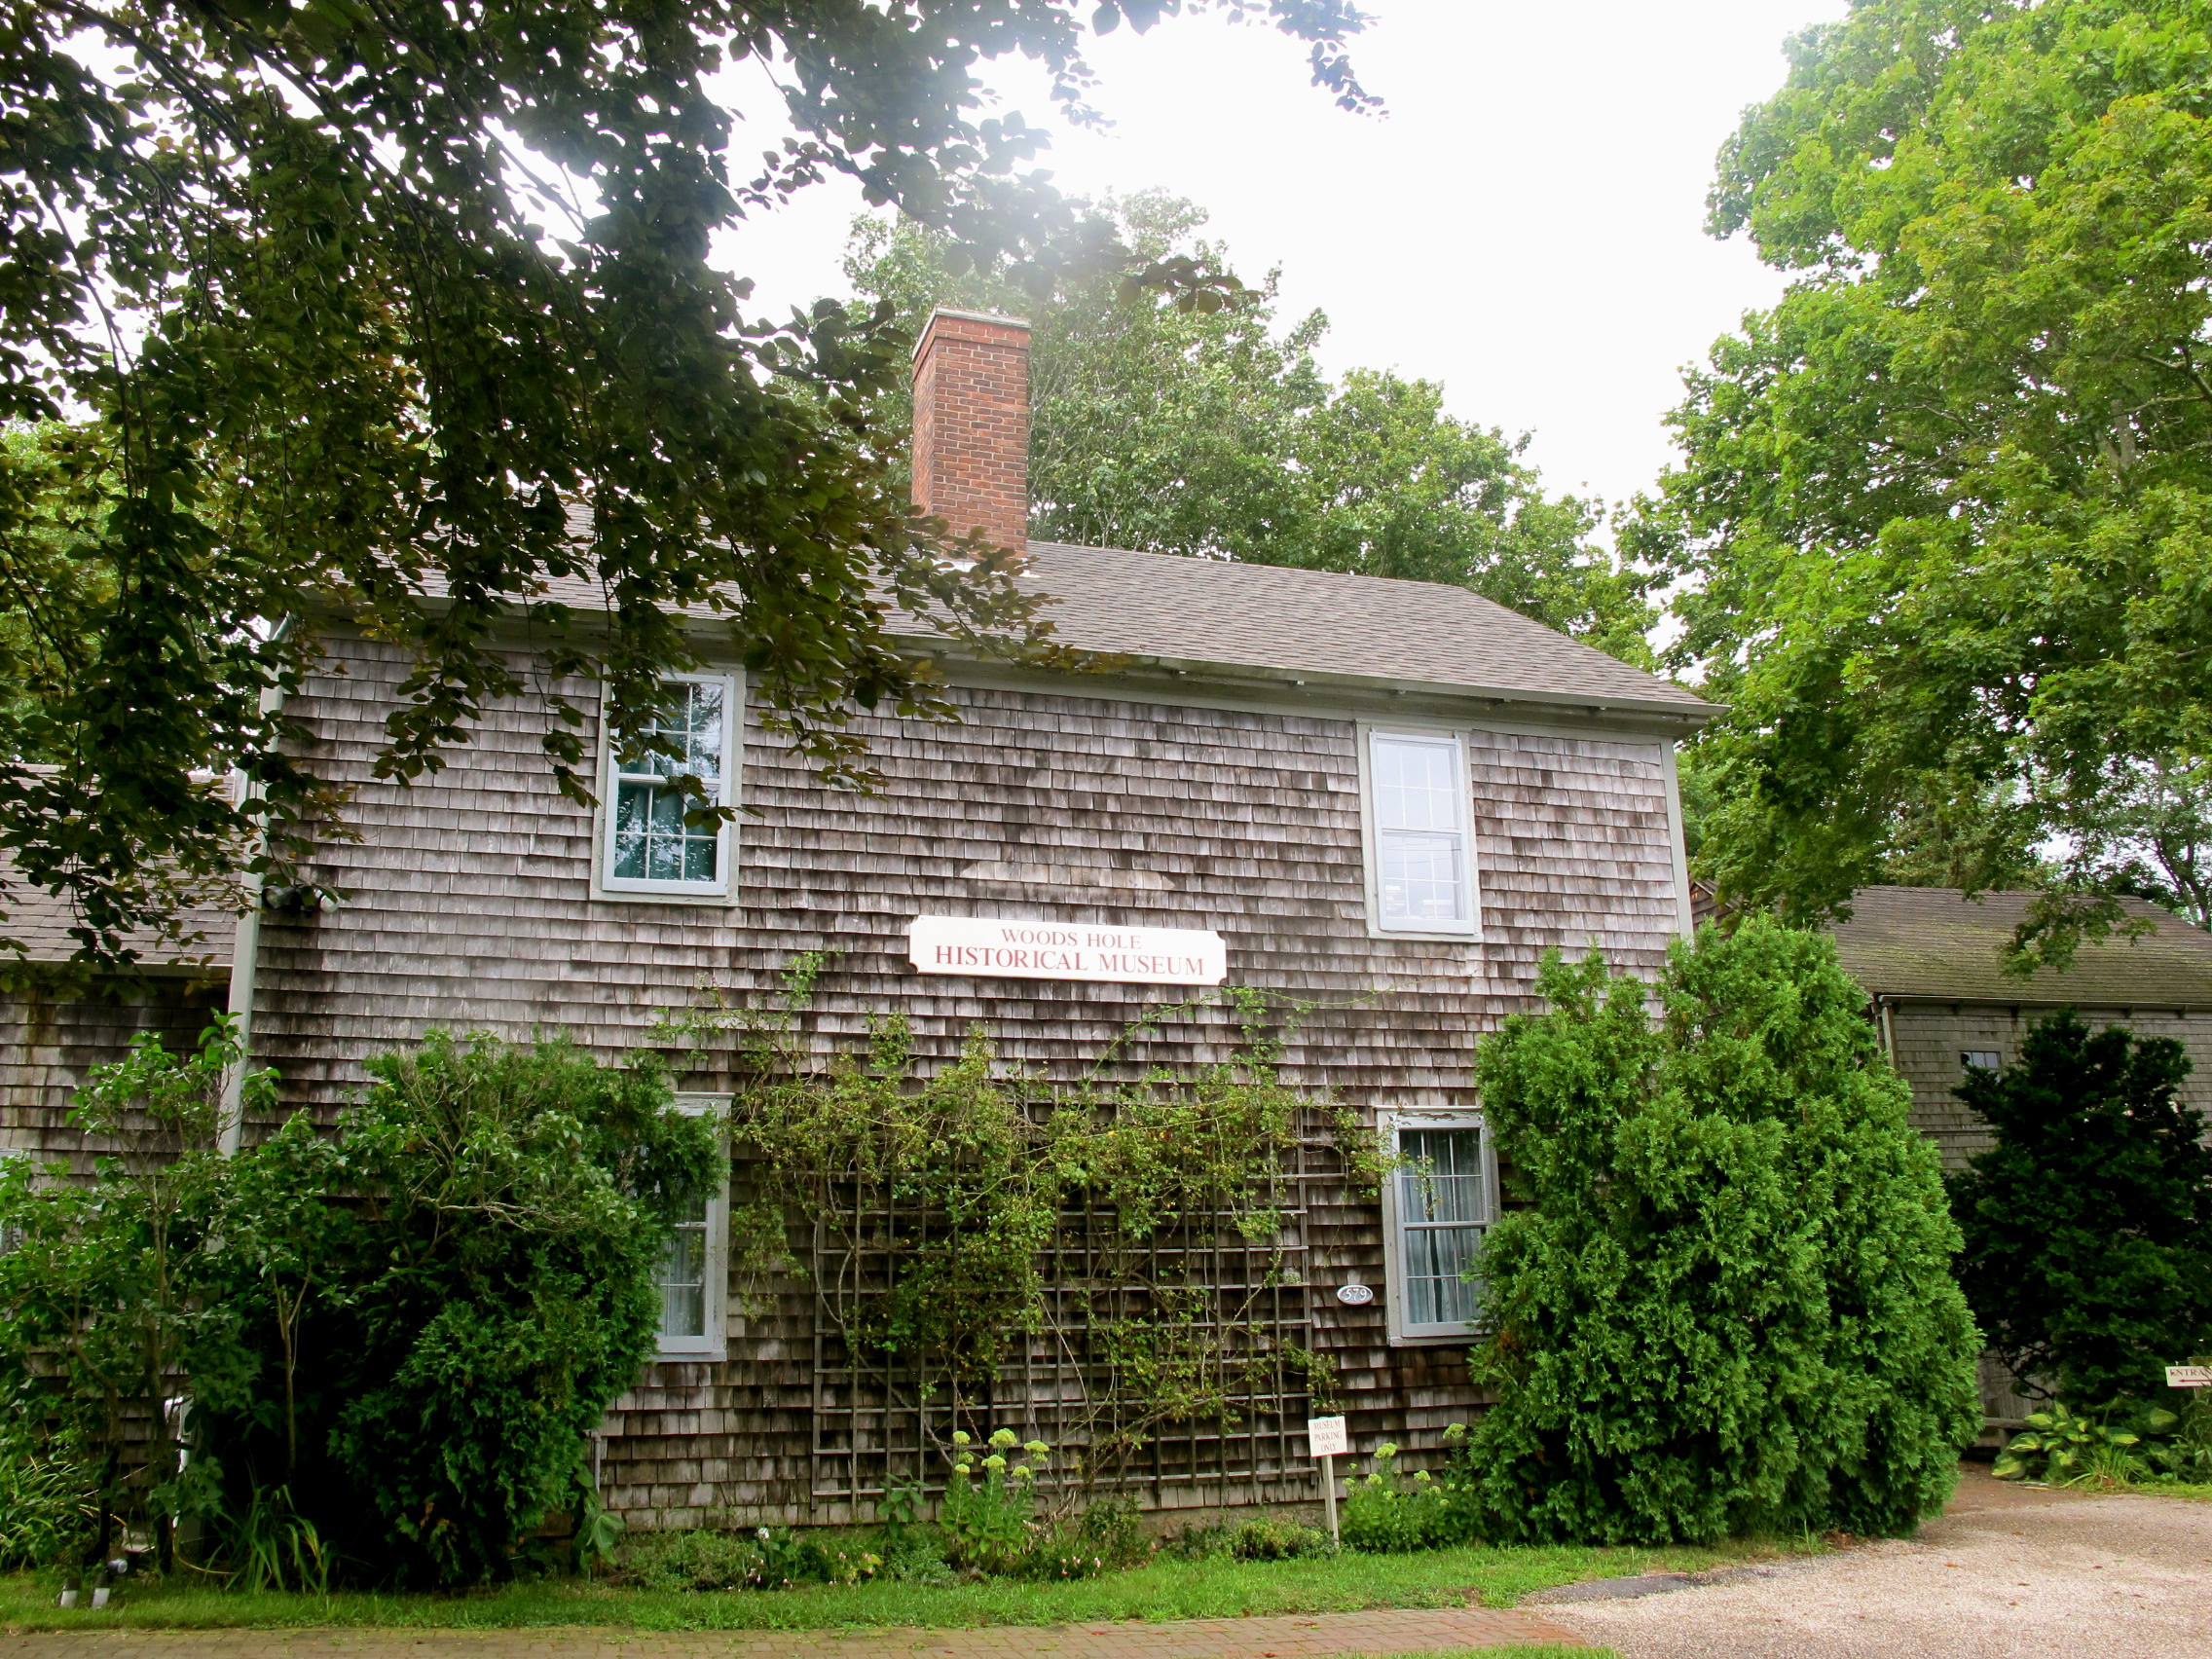 The Woods Hole Historical Museum (the Bradley House)